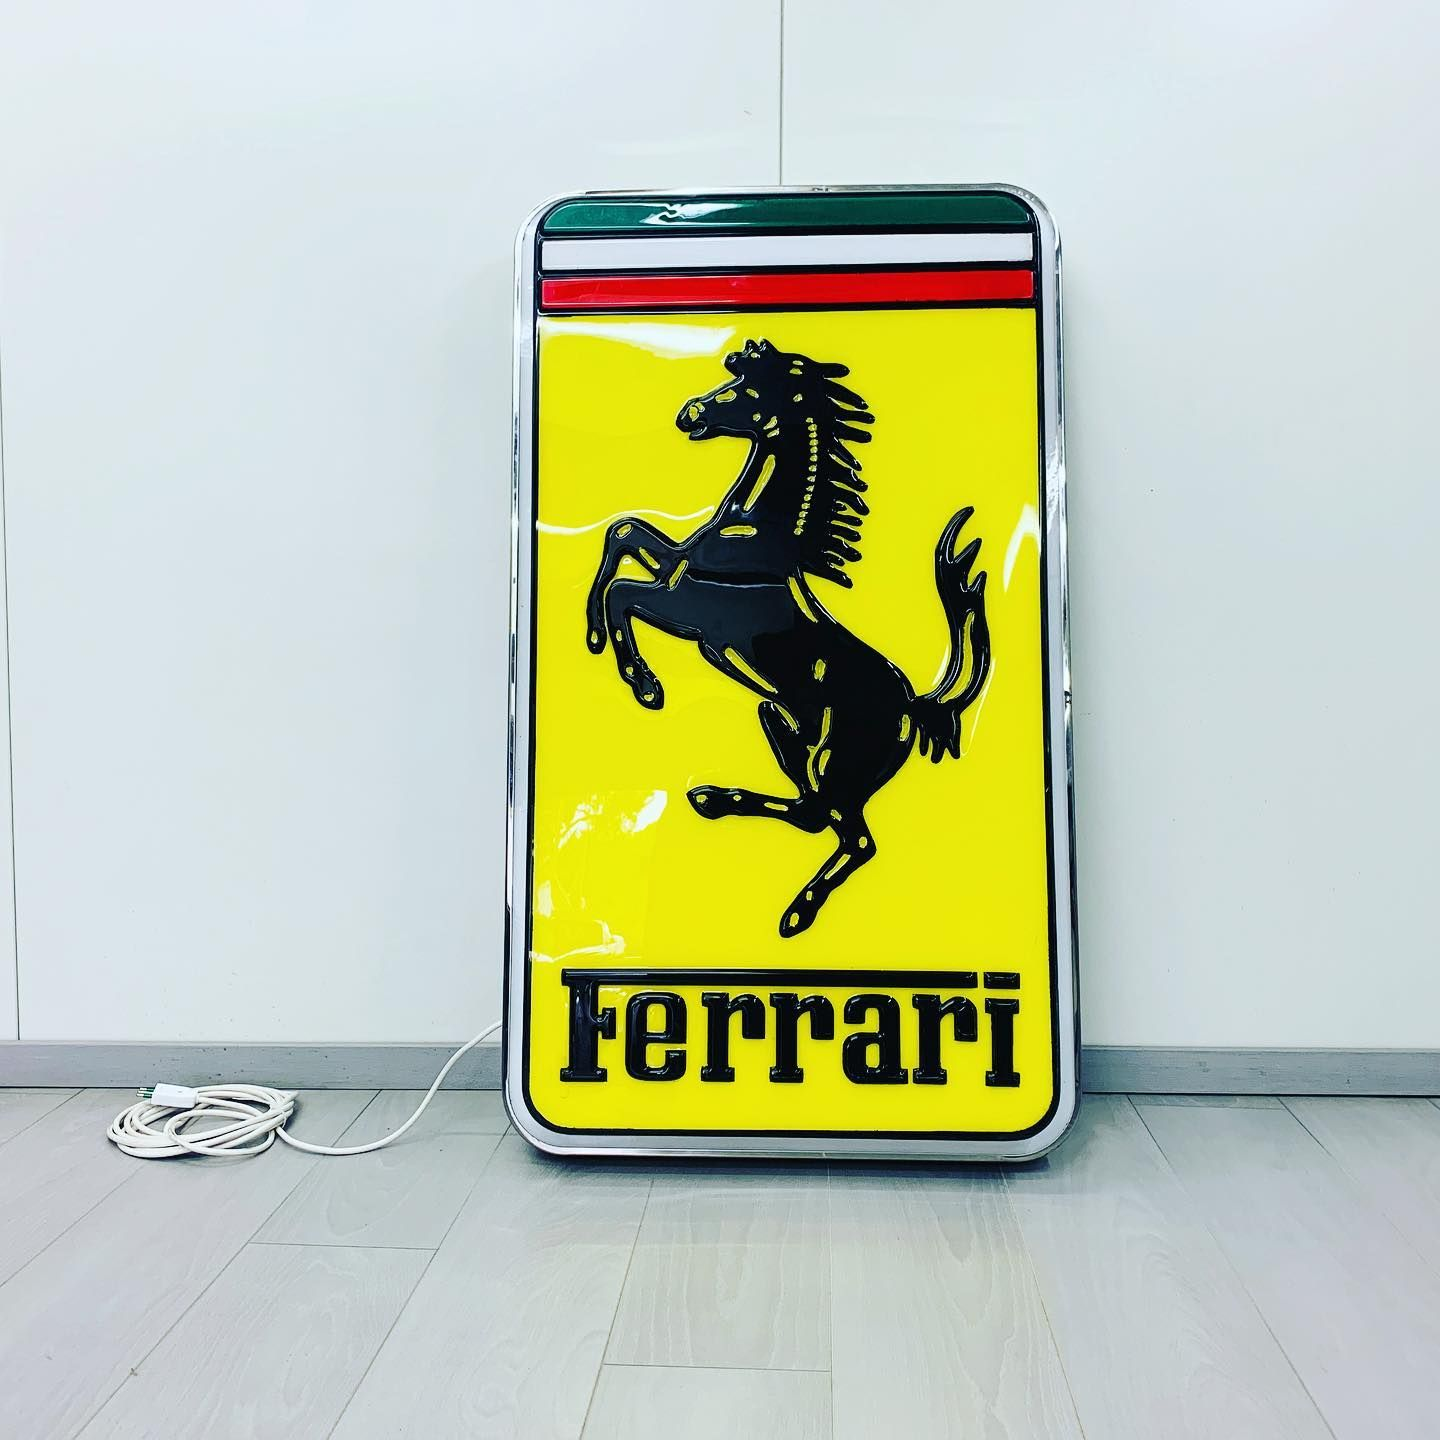 Fantastic Ferrari Illuminated Sign Original Made By Neon Modena 115 Cm Tall And 65 Cm Wide A Must Have For Any Ferra Ferrari Sign Illuminated Signs Ferrari